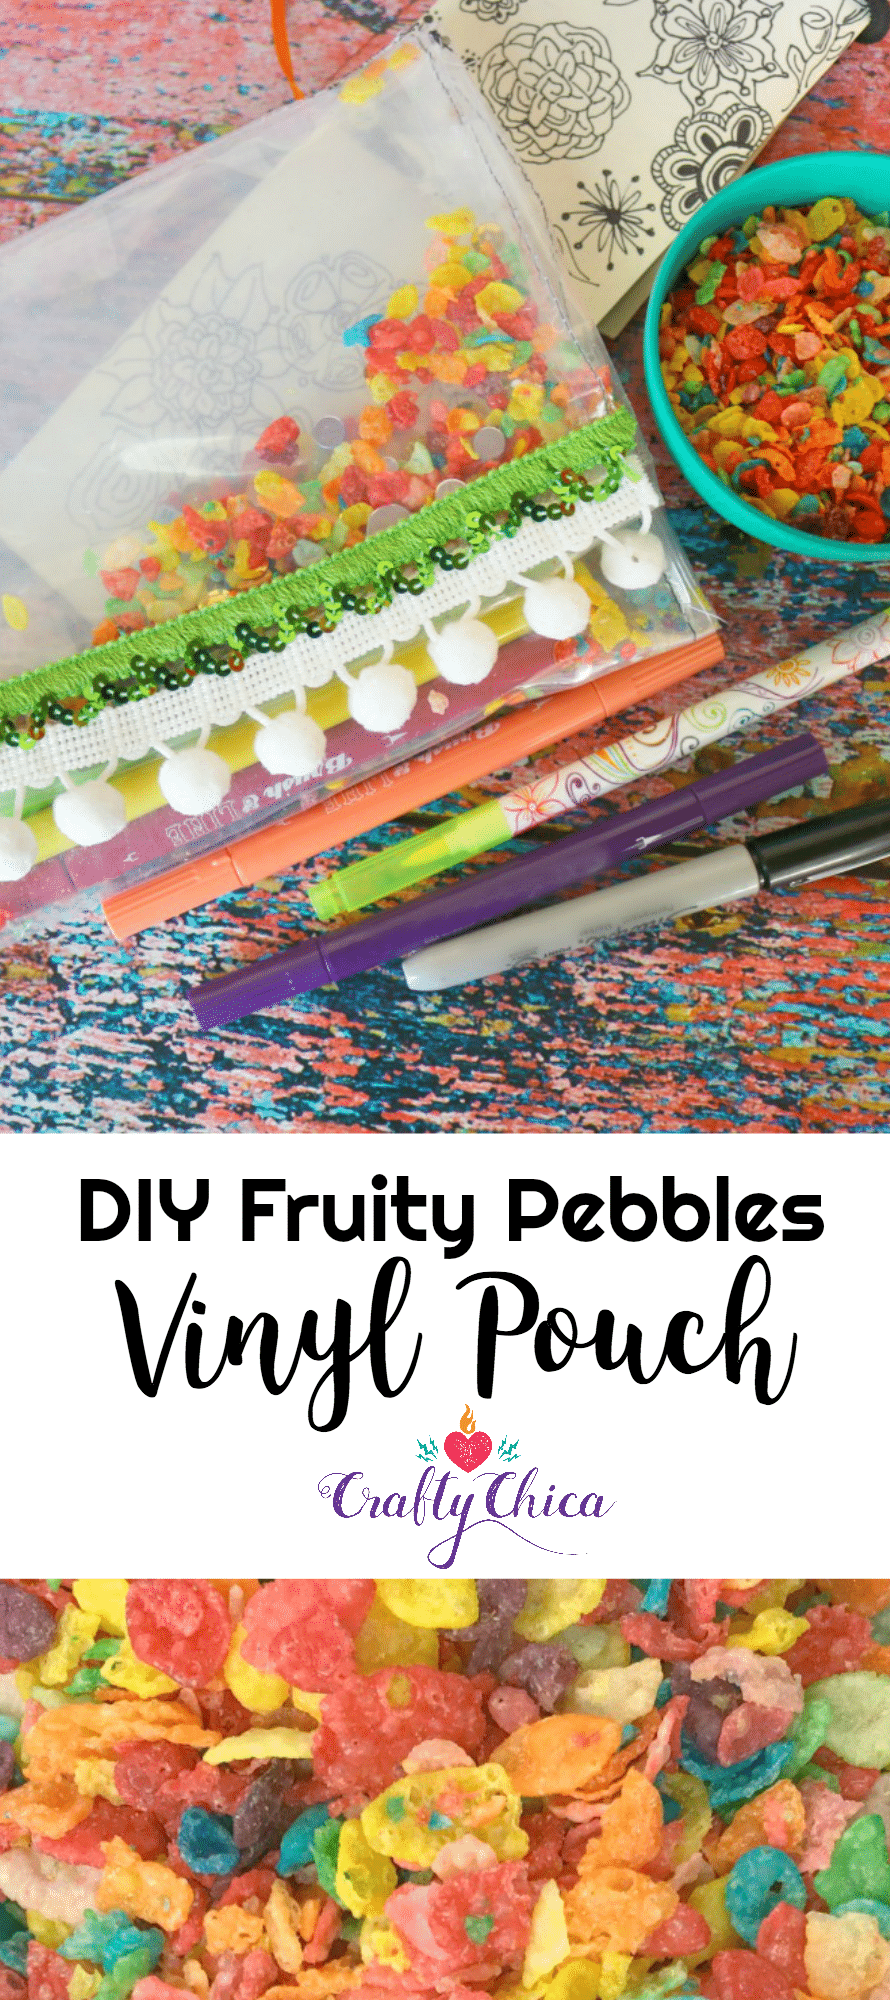 Fruity Pebbles Craft - How to make a vinyl pouch